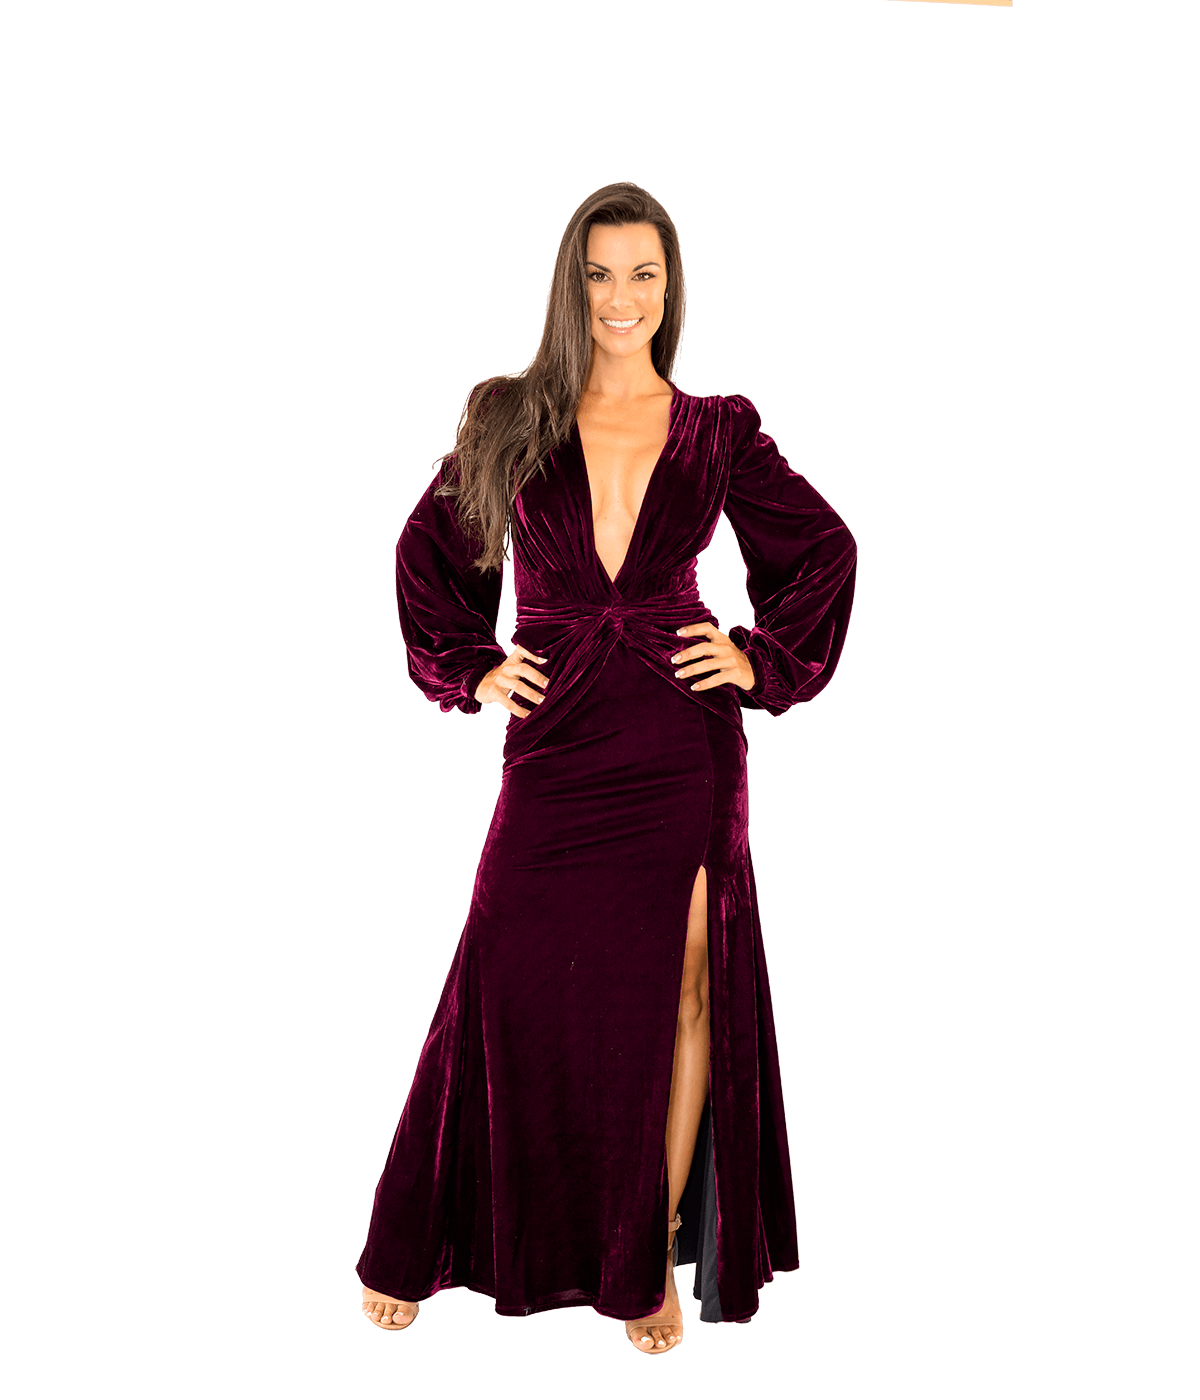 Velvet Long Sleeve Gown - Lady Jetset